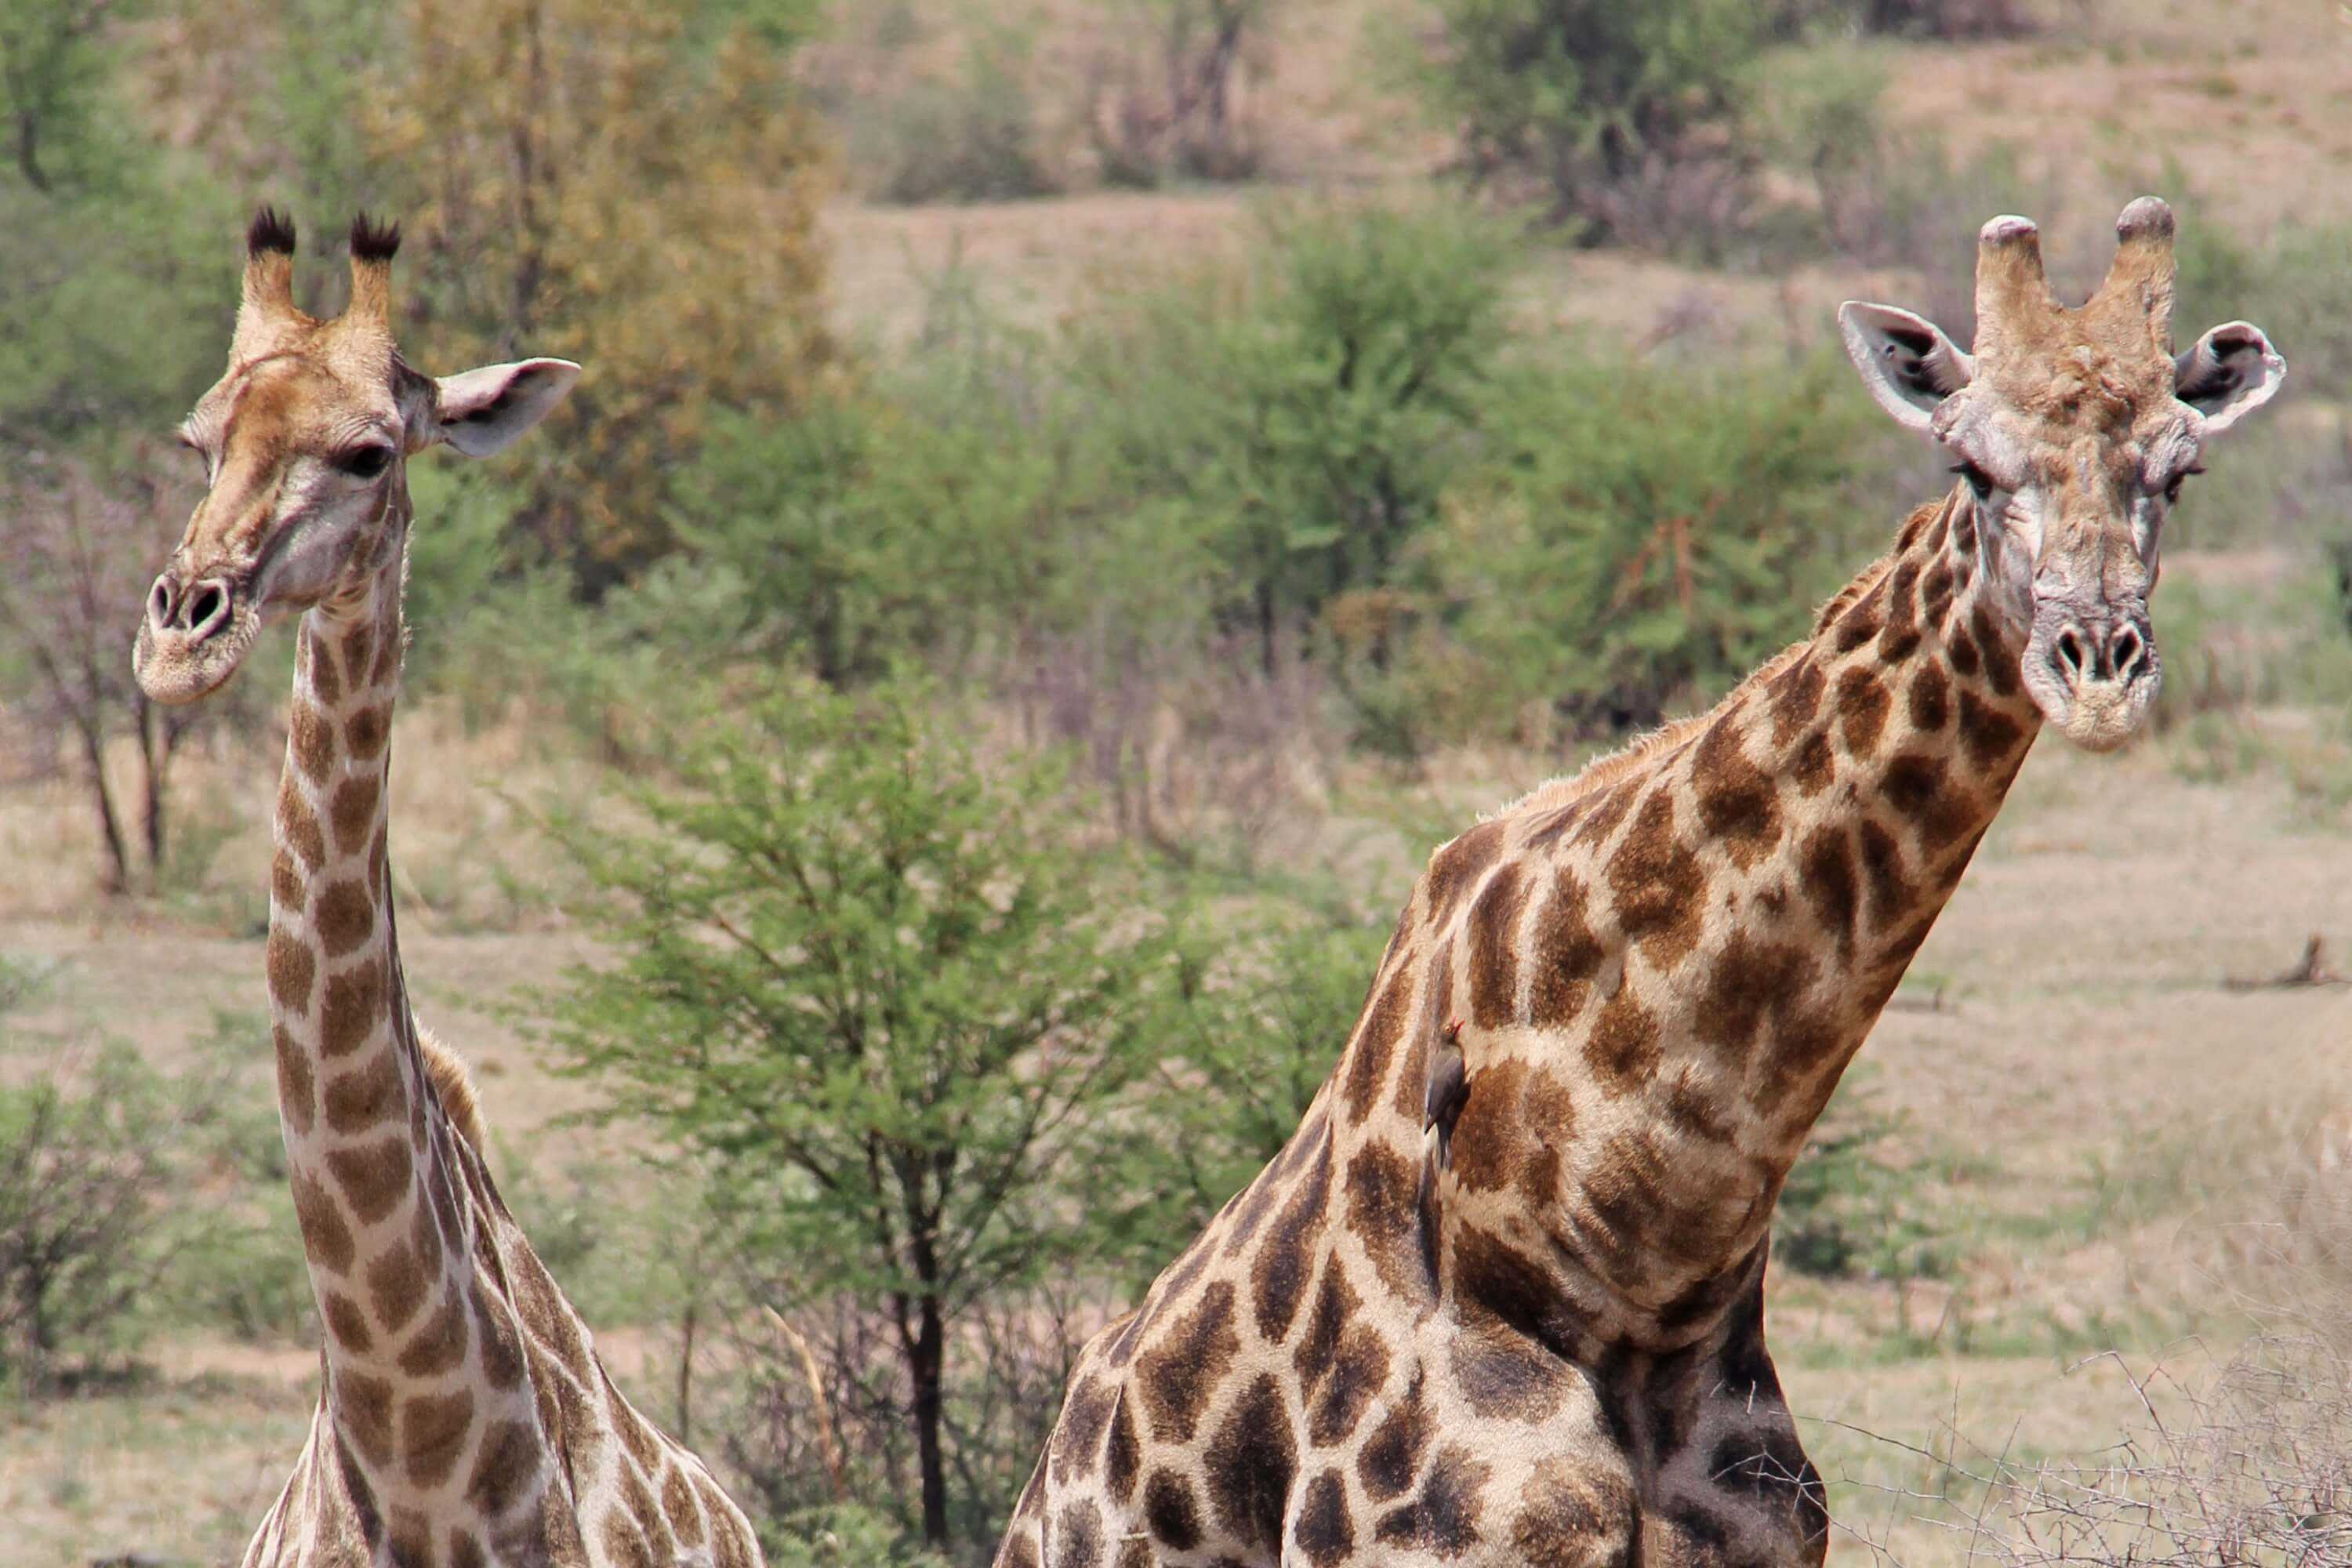 Kruger National Park - Things to do in South Africa